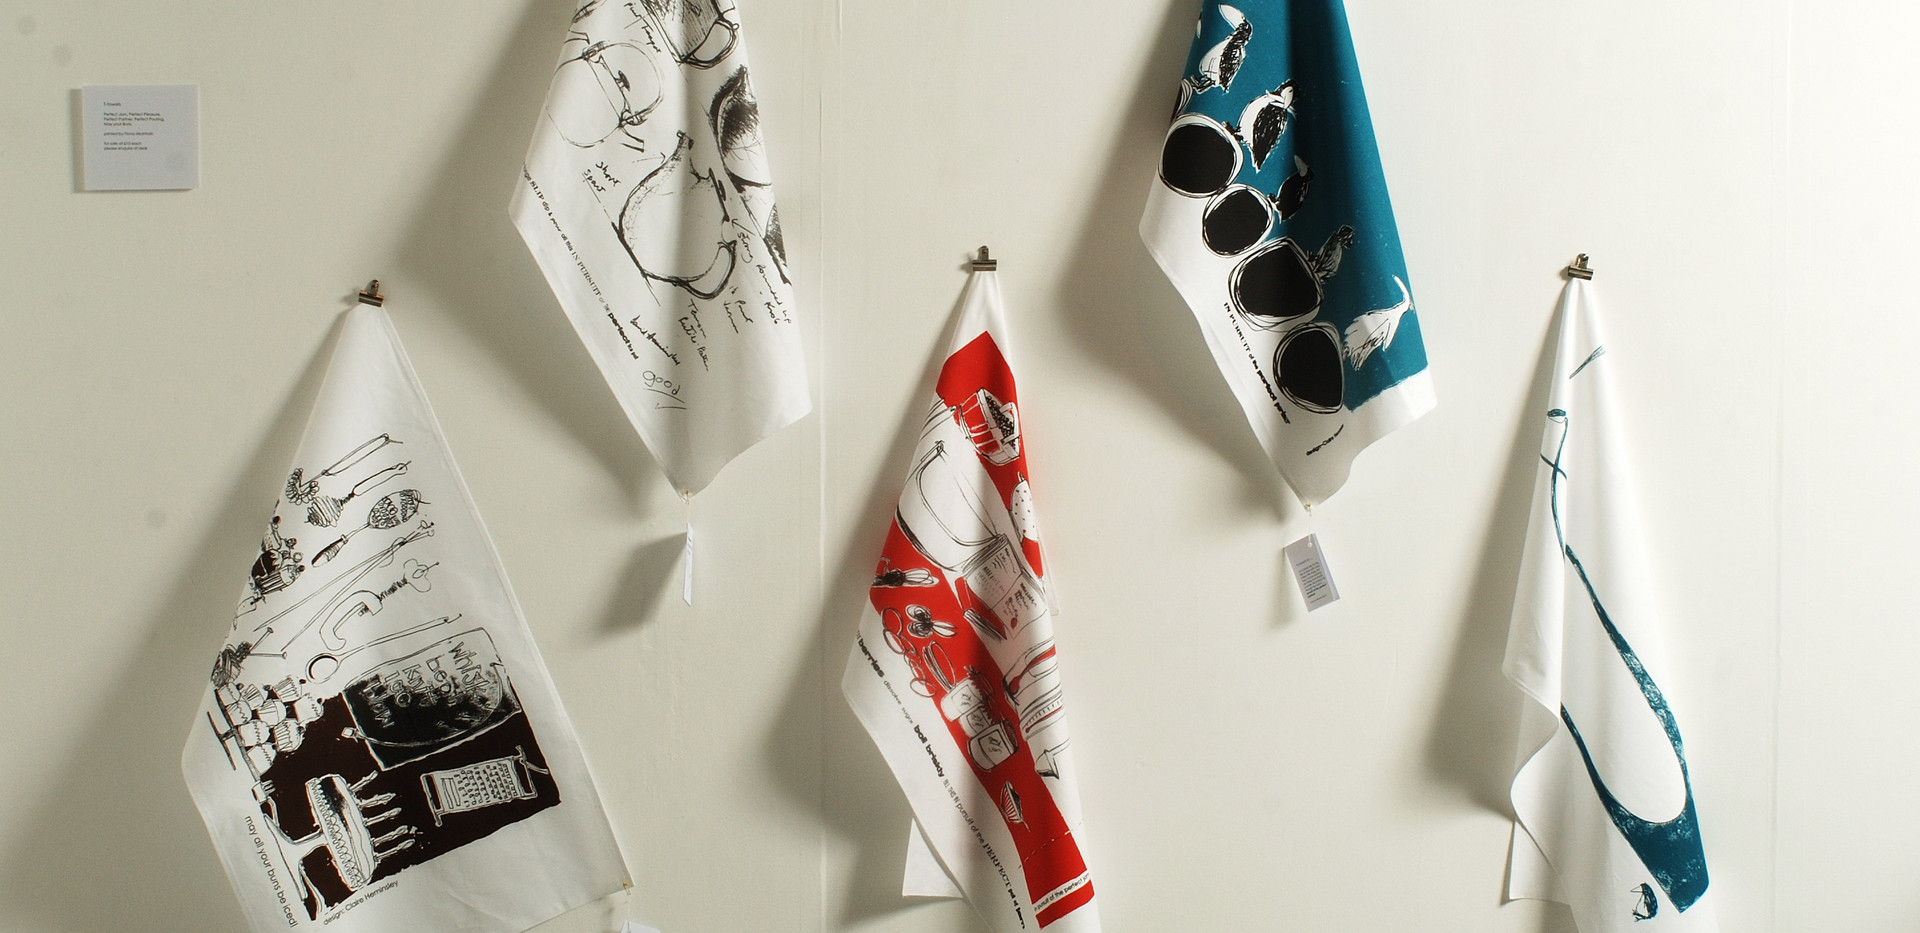 Tea towels on display